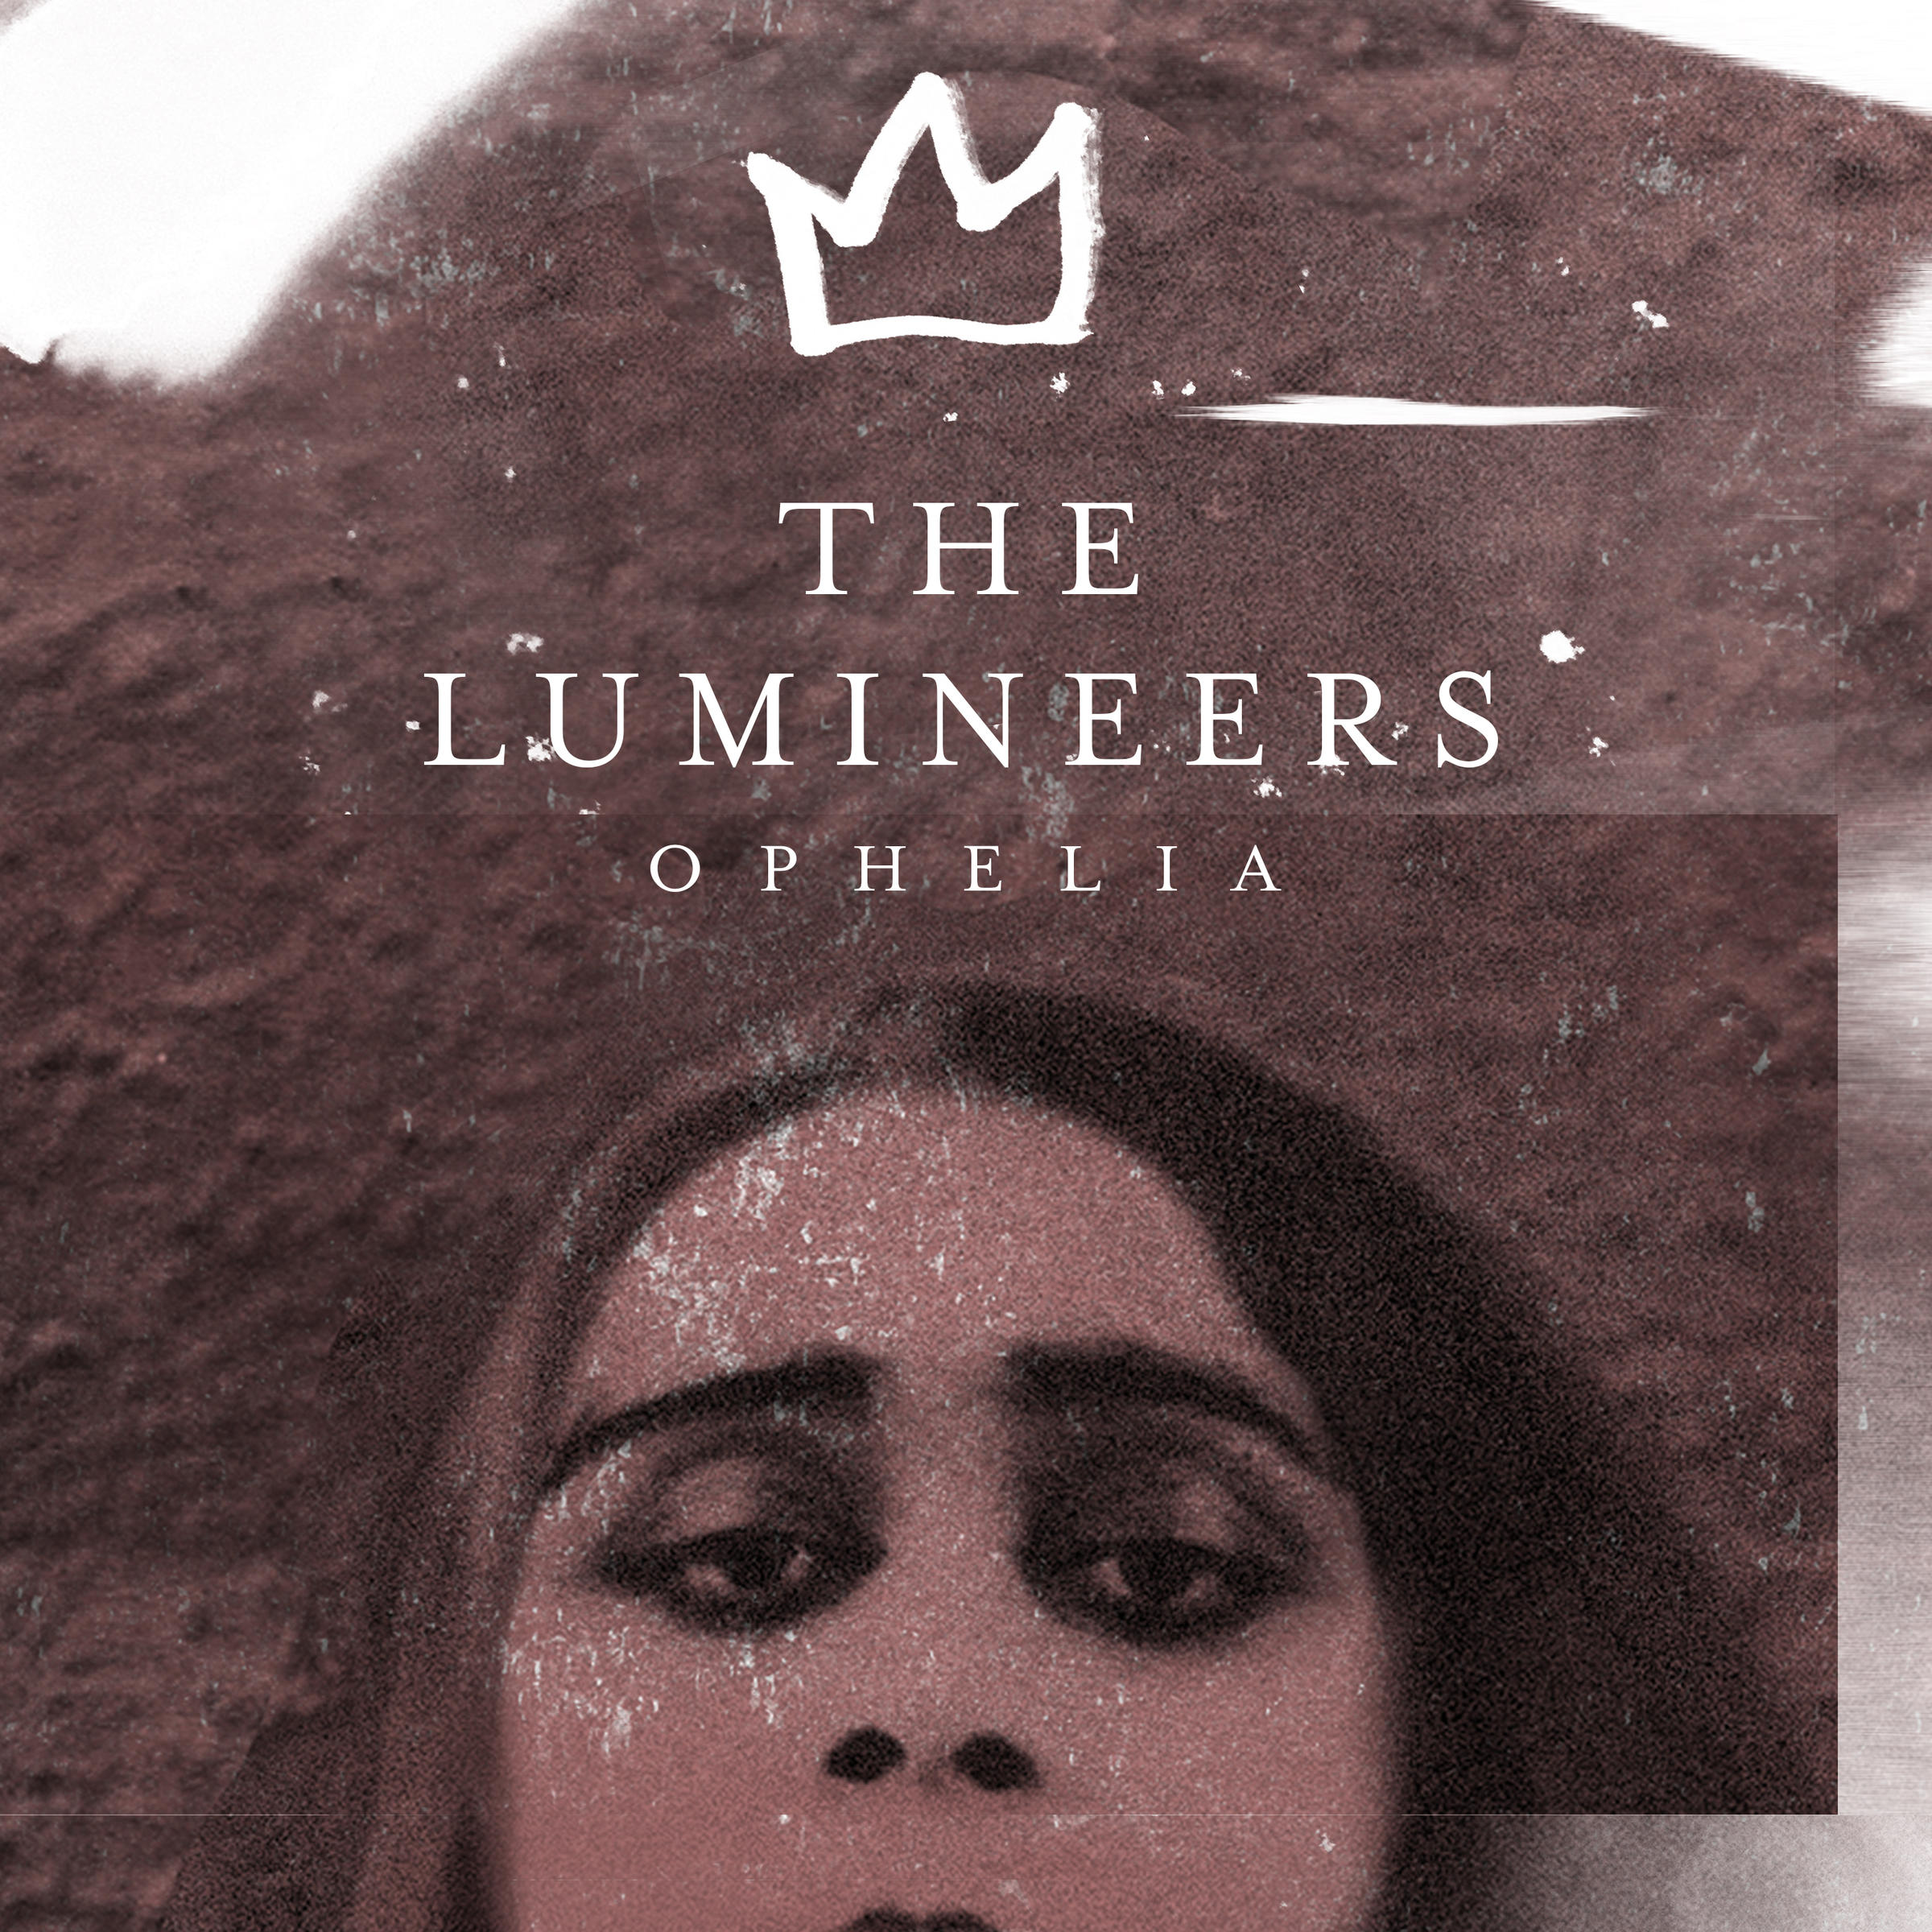 The Lumineers - Ophelia (Single)